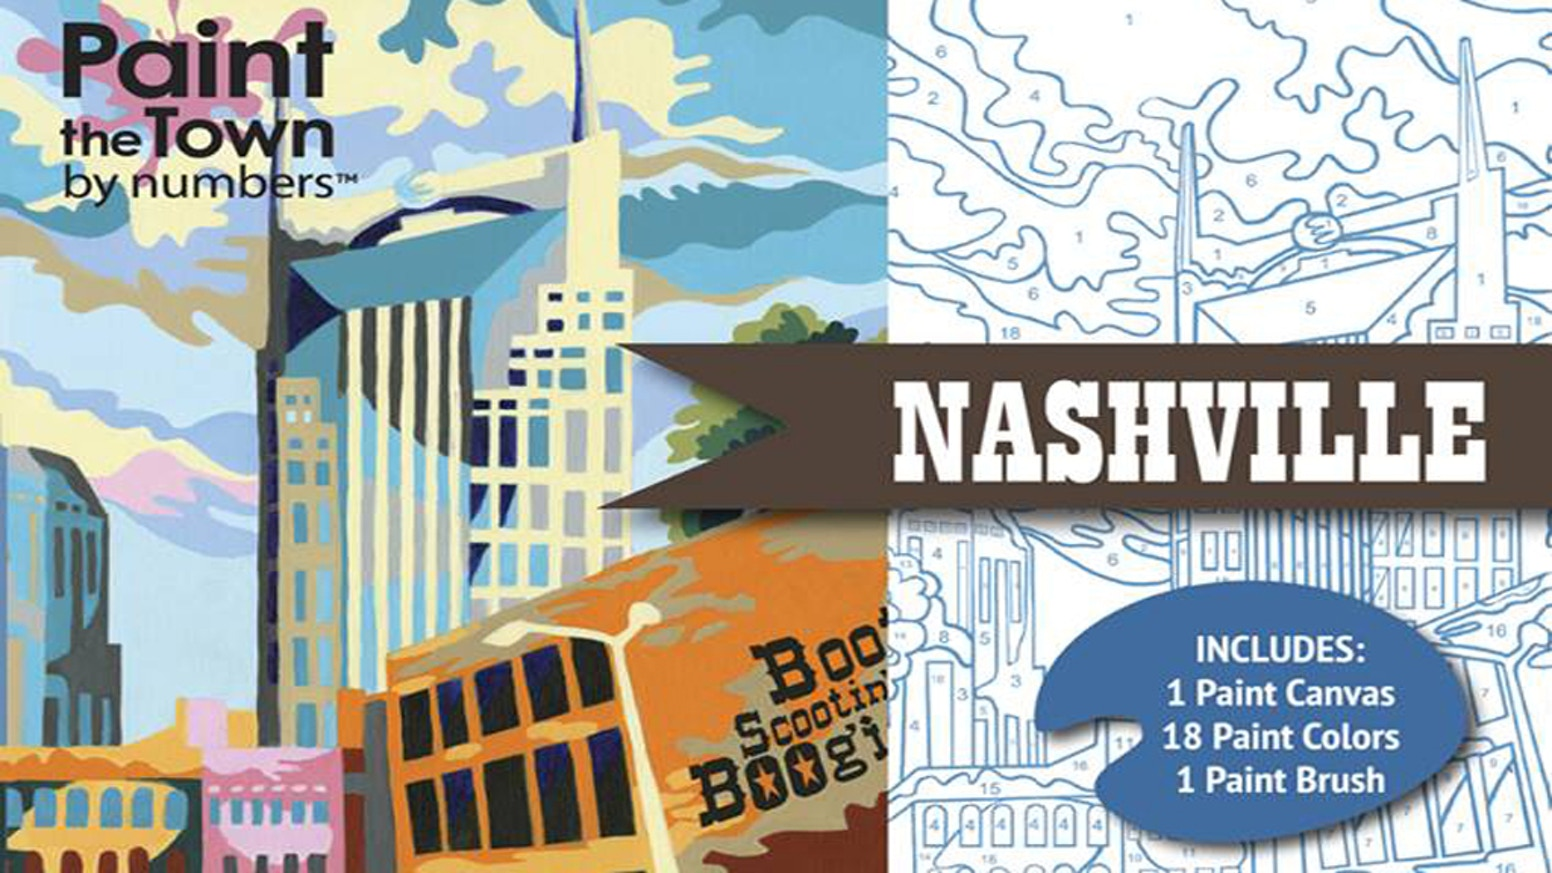 paint the town by numbers nashville a paint by numbers kit by